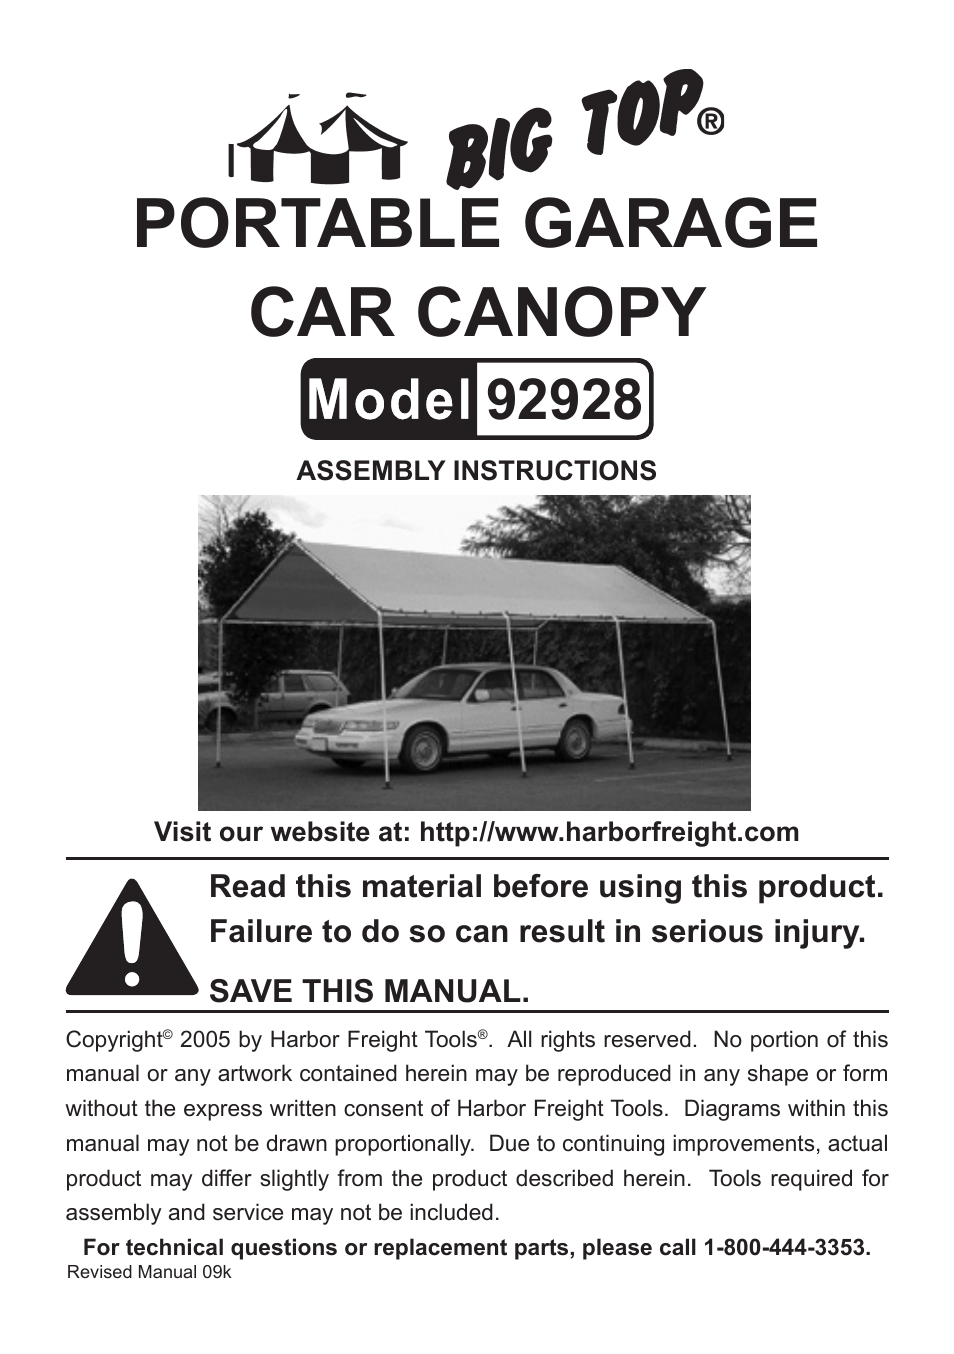 Harbor Freight Tools BIG TOP 92928 User Manual | 5 pages